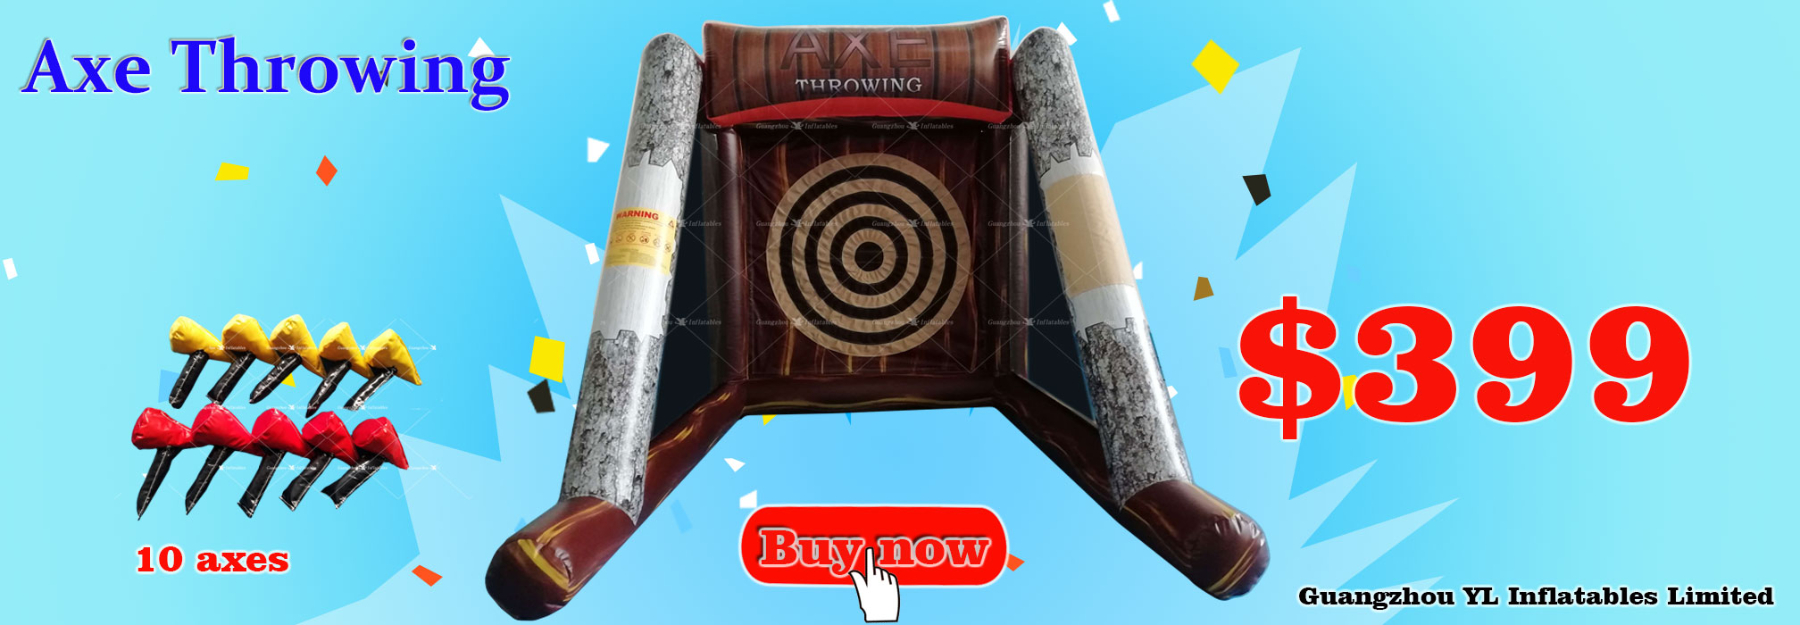 399USD Inflatable Axe throwing for 2019 Carnival